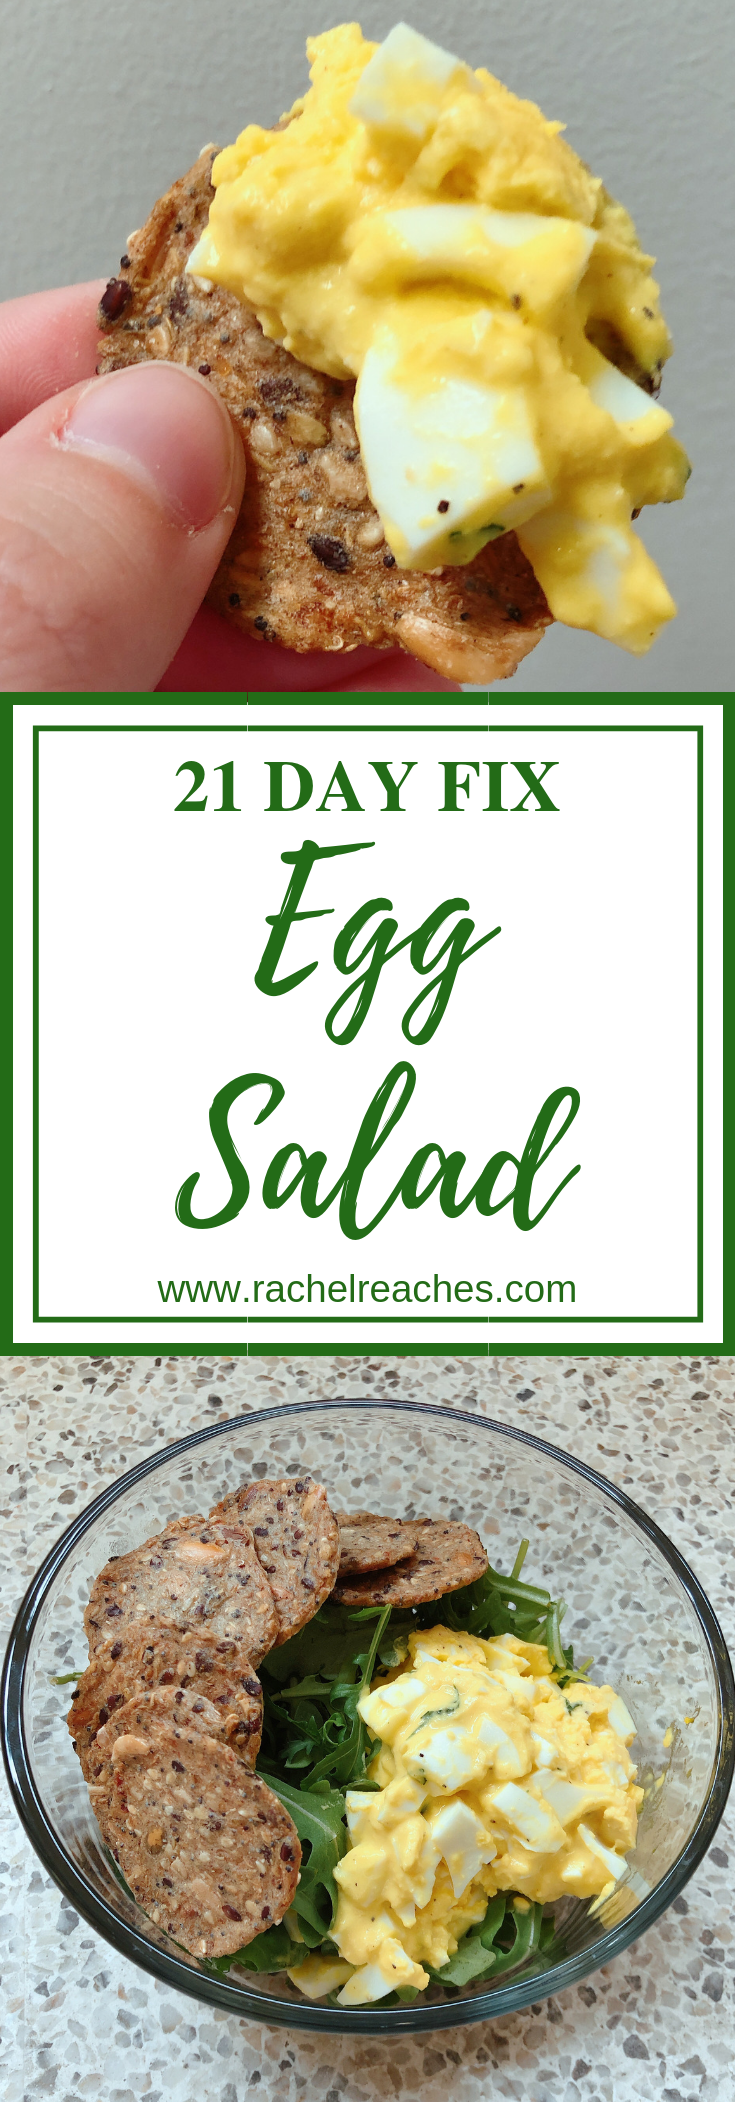 Egg Salad Pin - 21 Day Fix.png